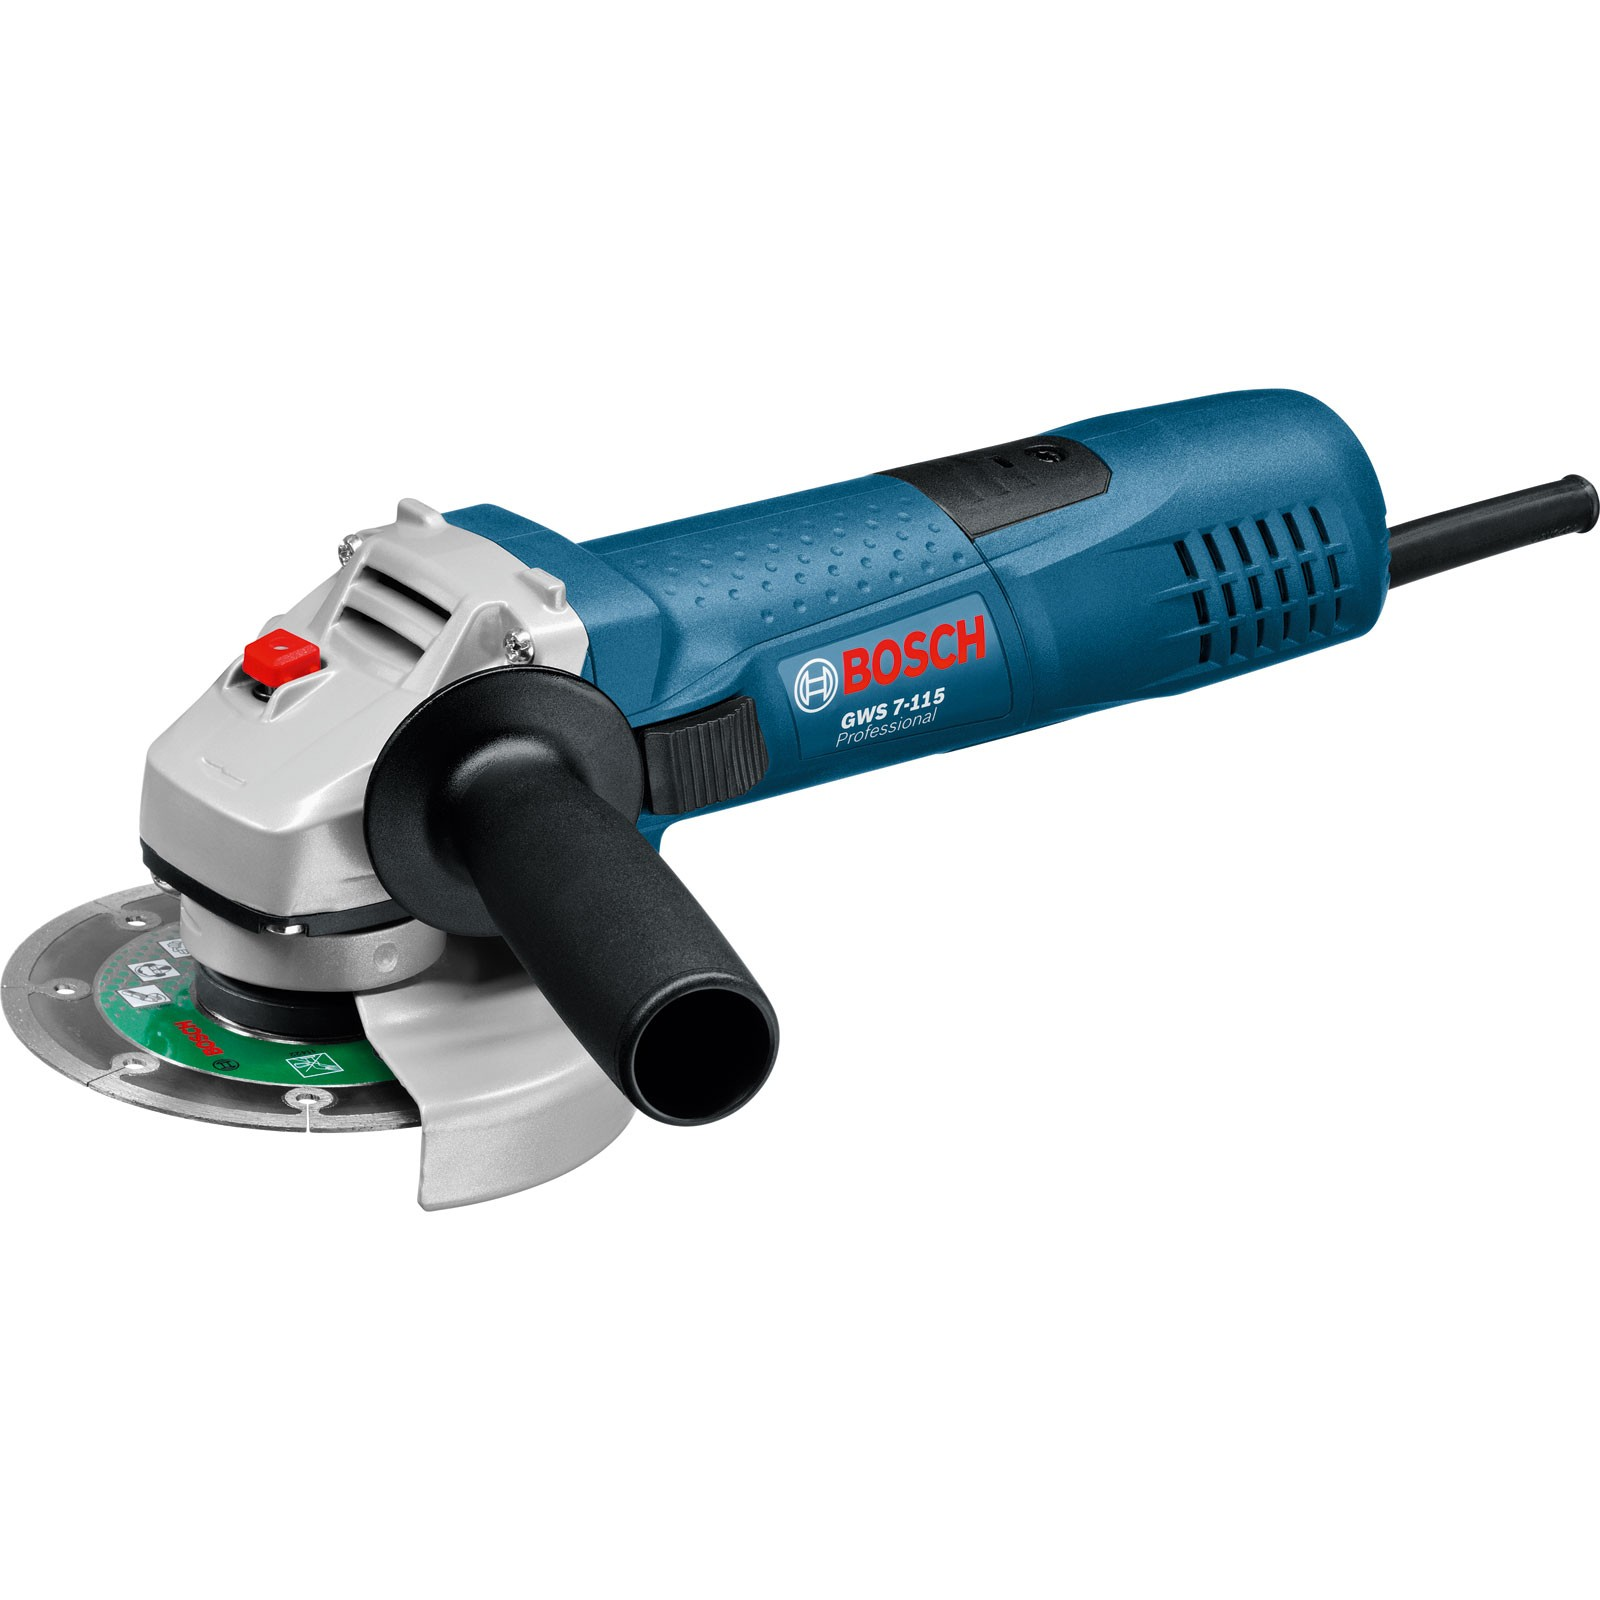 bosch gws 7 115 slim grip angle grinder 115mm 4 5. Black Bedroom Furniture Sets. Home Design Ideas